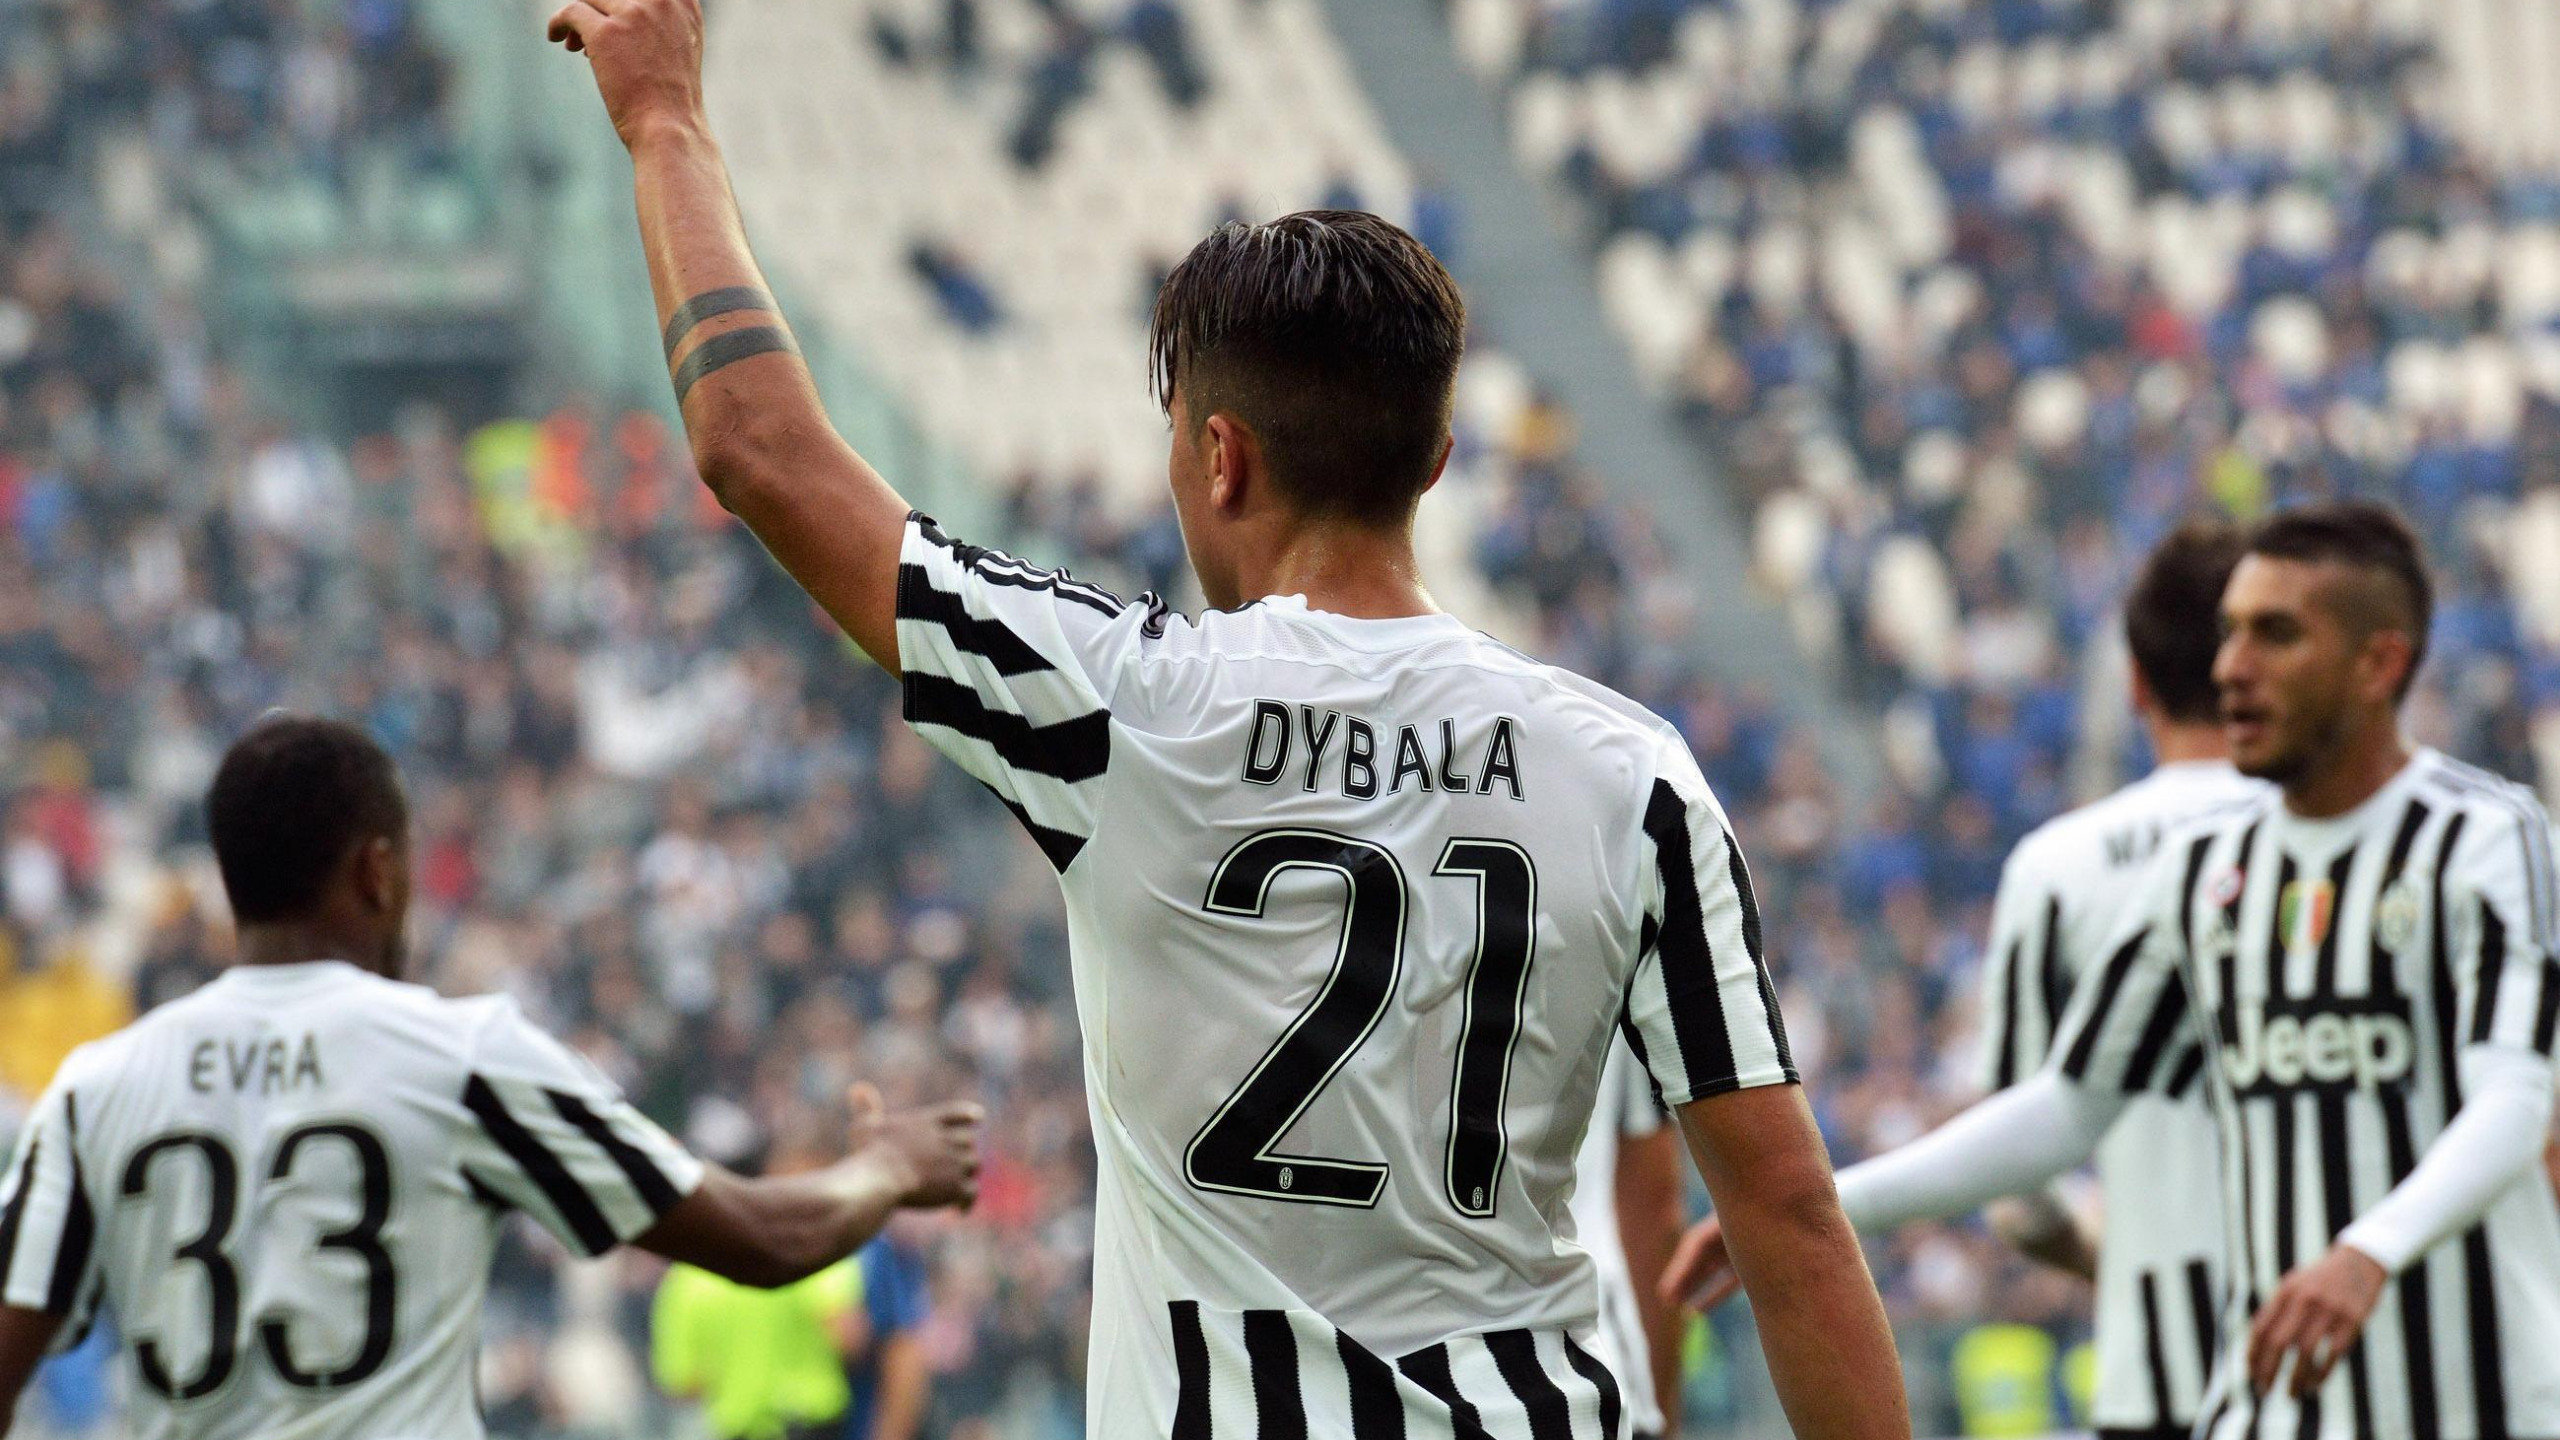 Download Wallpaper Dybala Dybala Becoming Juventus New Tevez Argenina Section Sports In Resolution 2560x1440